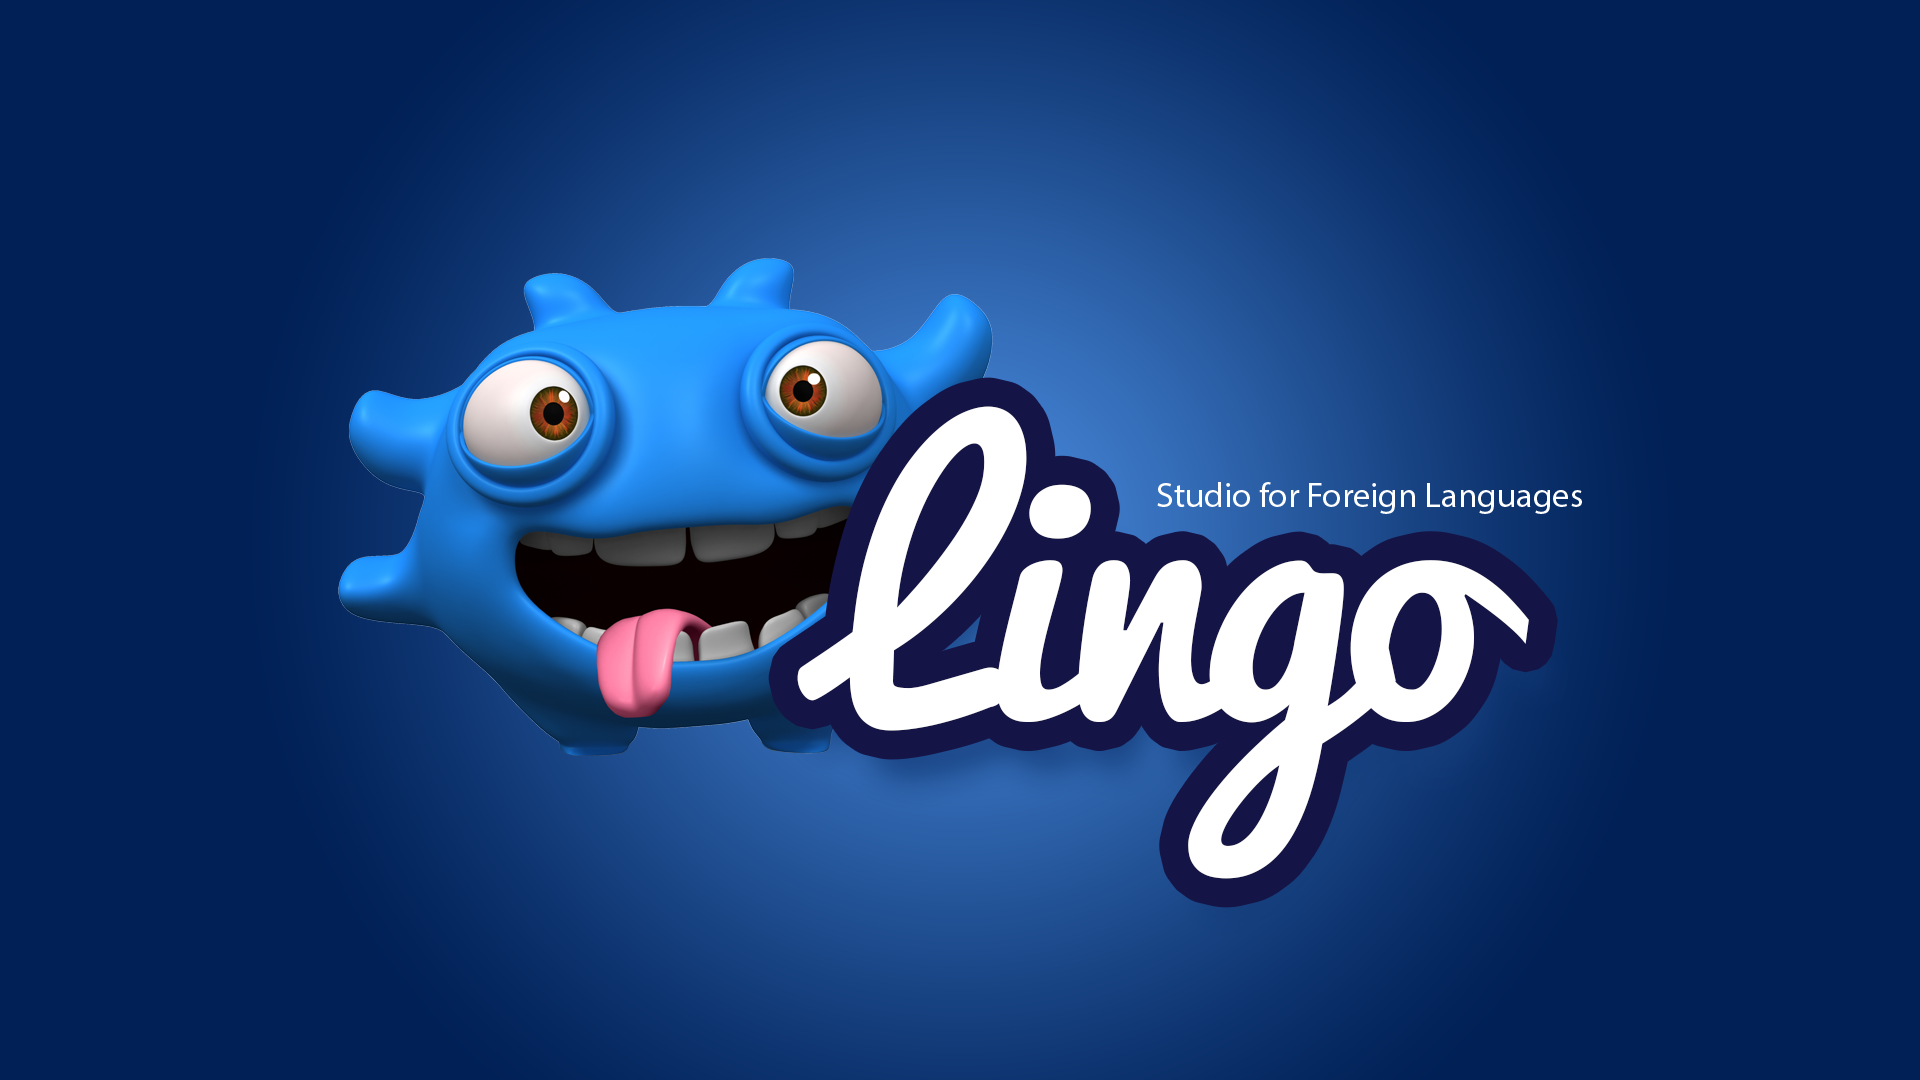 LINGO STUDIO FOR FOREIGN LANGUAGES